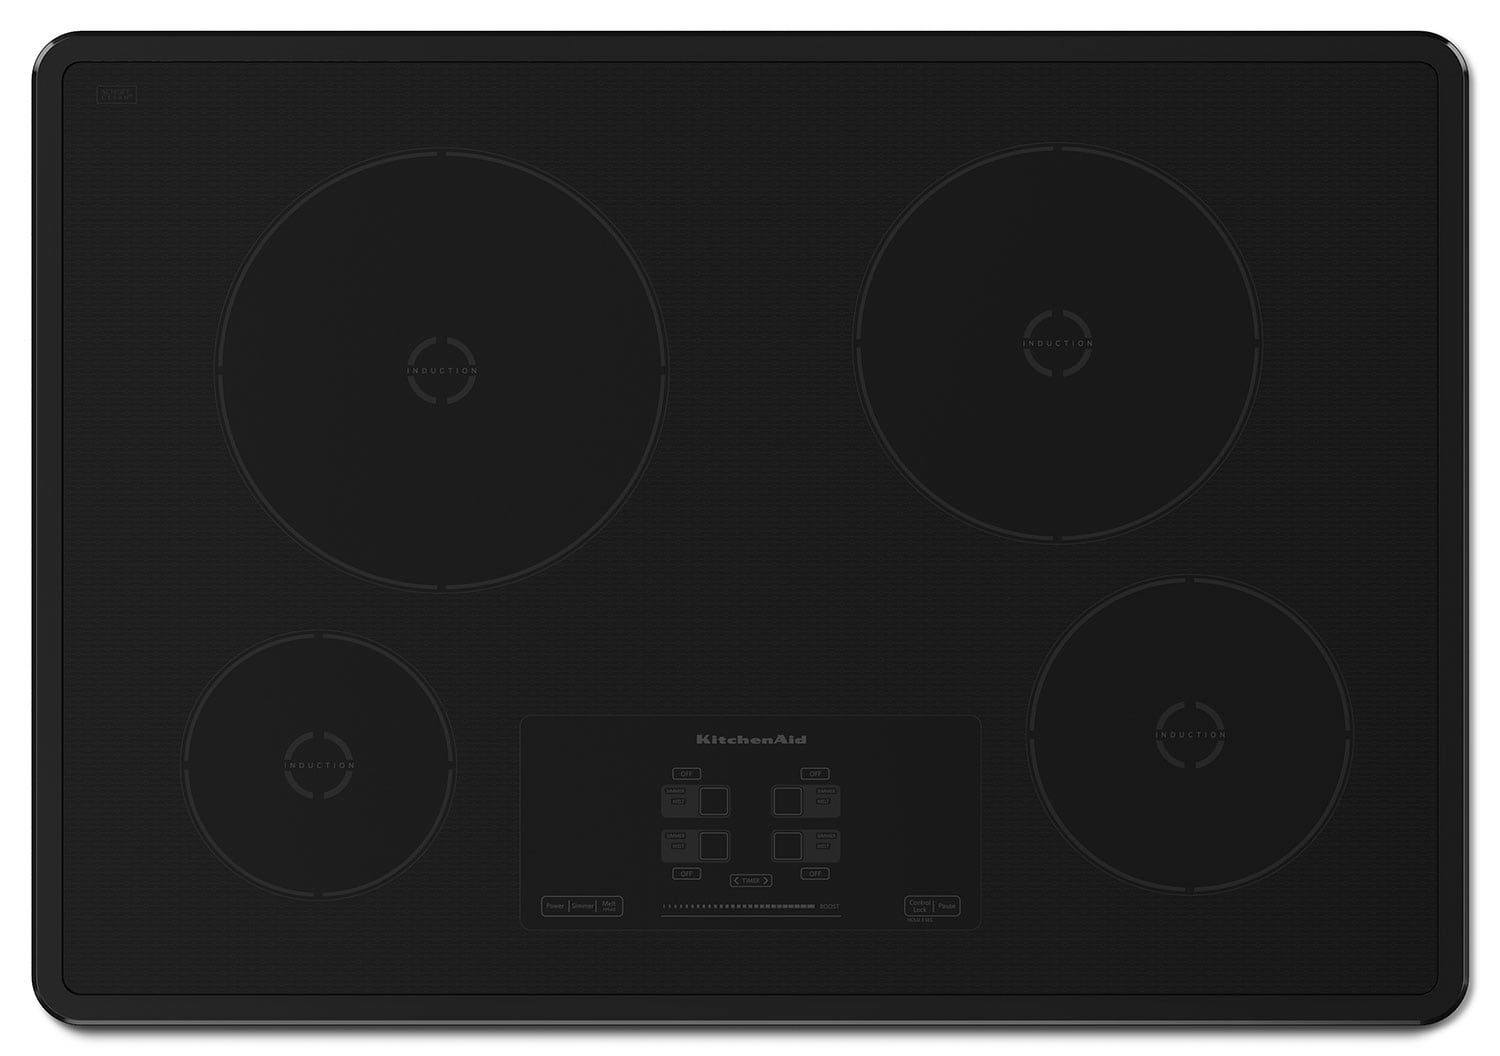 Cooking Products - KitchenAid Induction Cooktop KICU500XBL